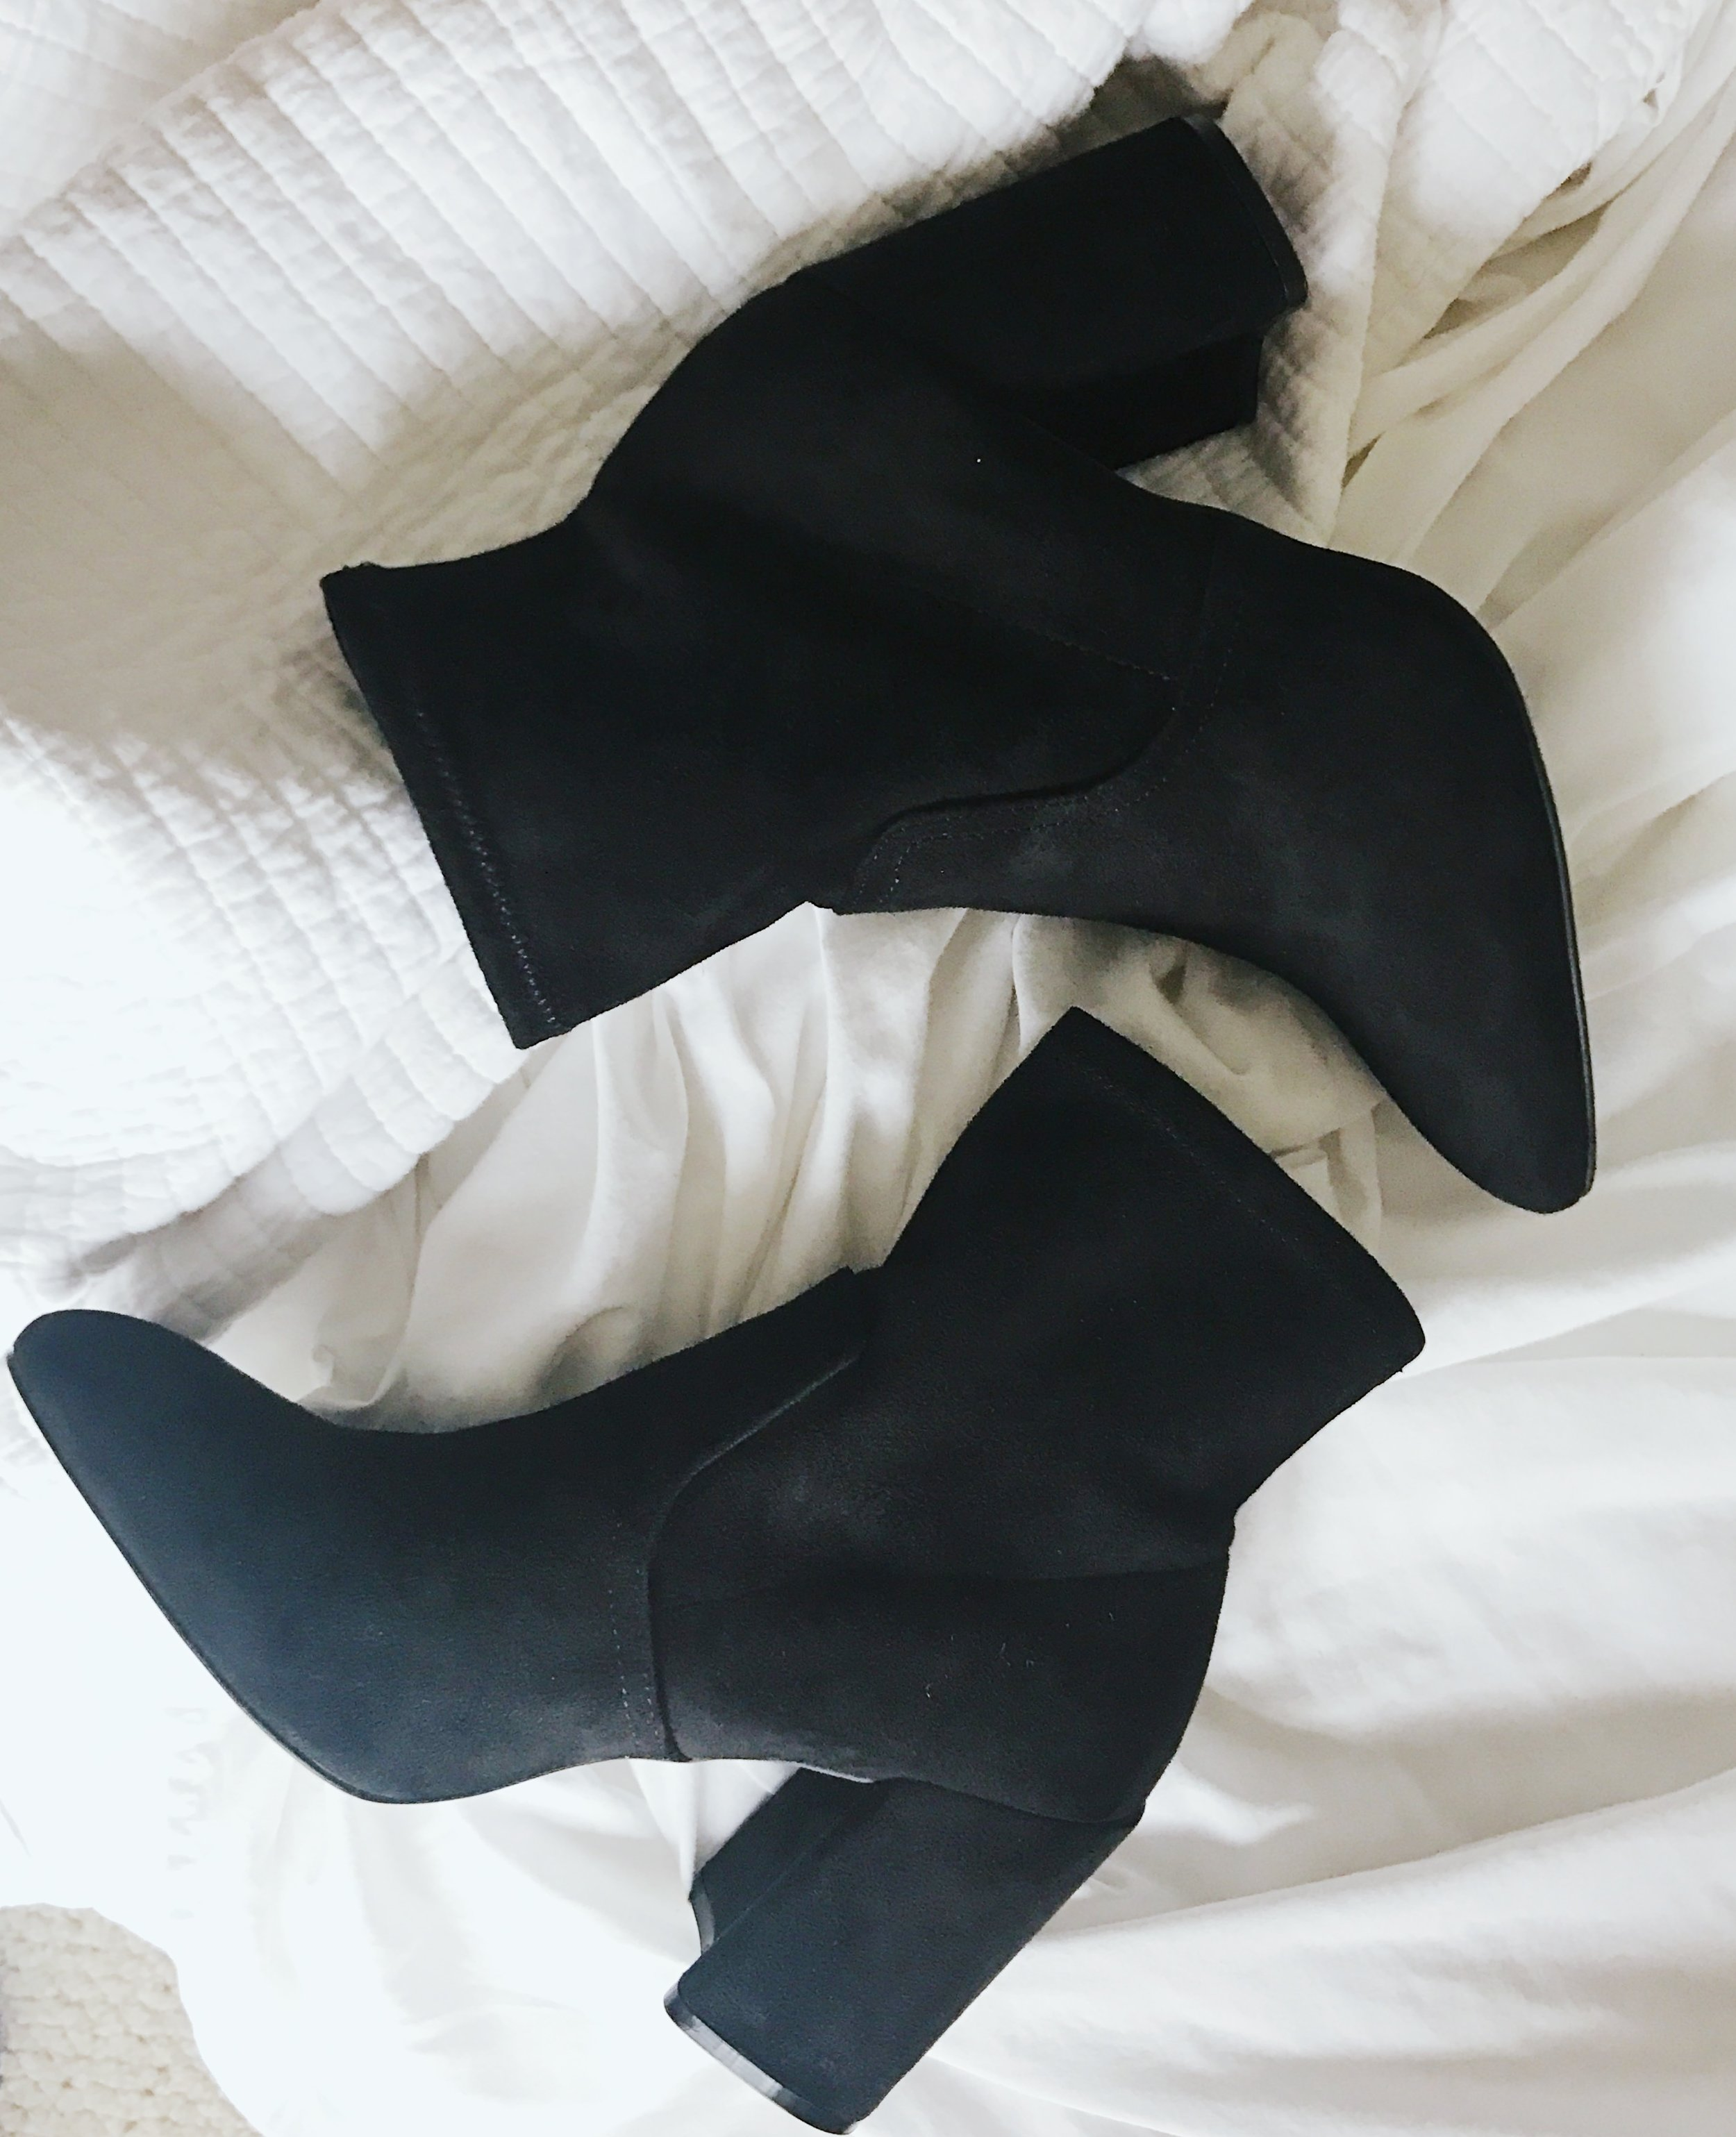 booties here,  I paid $7.50